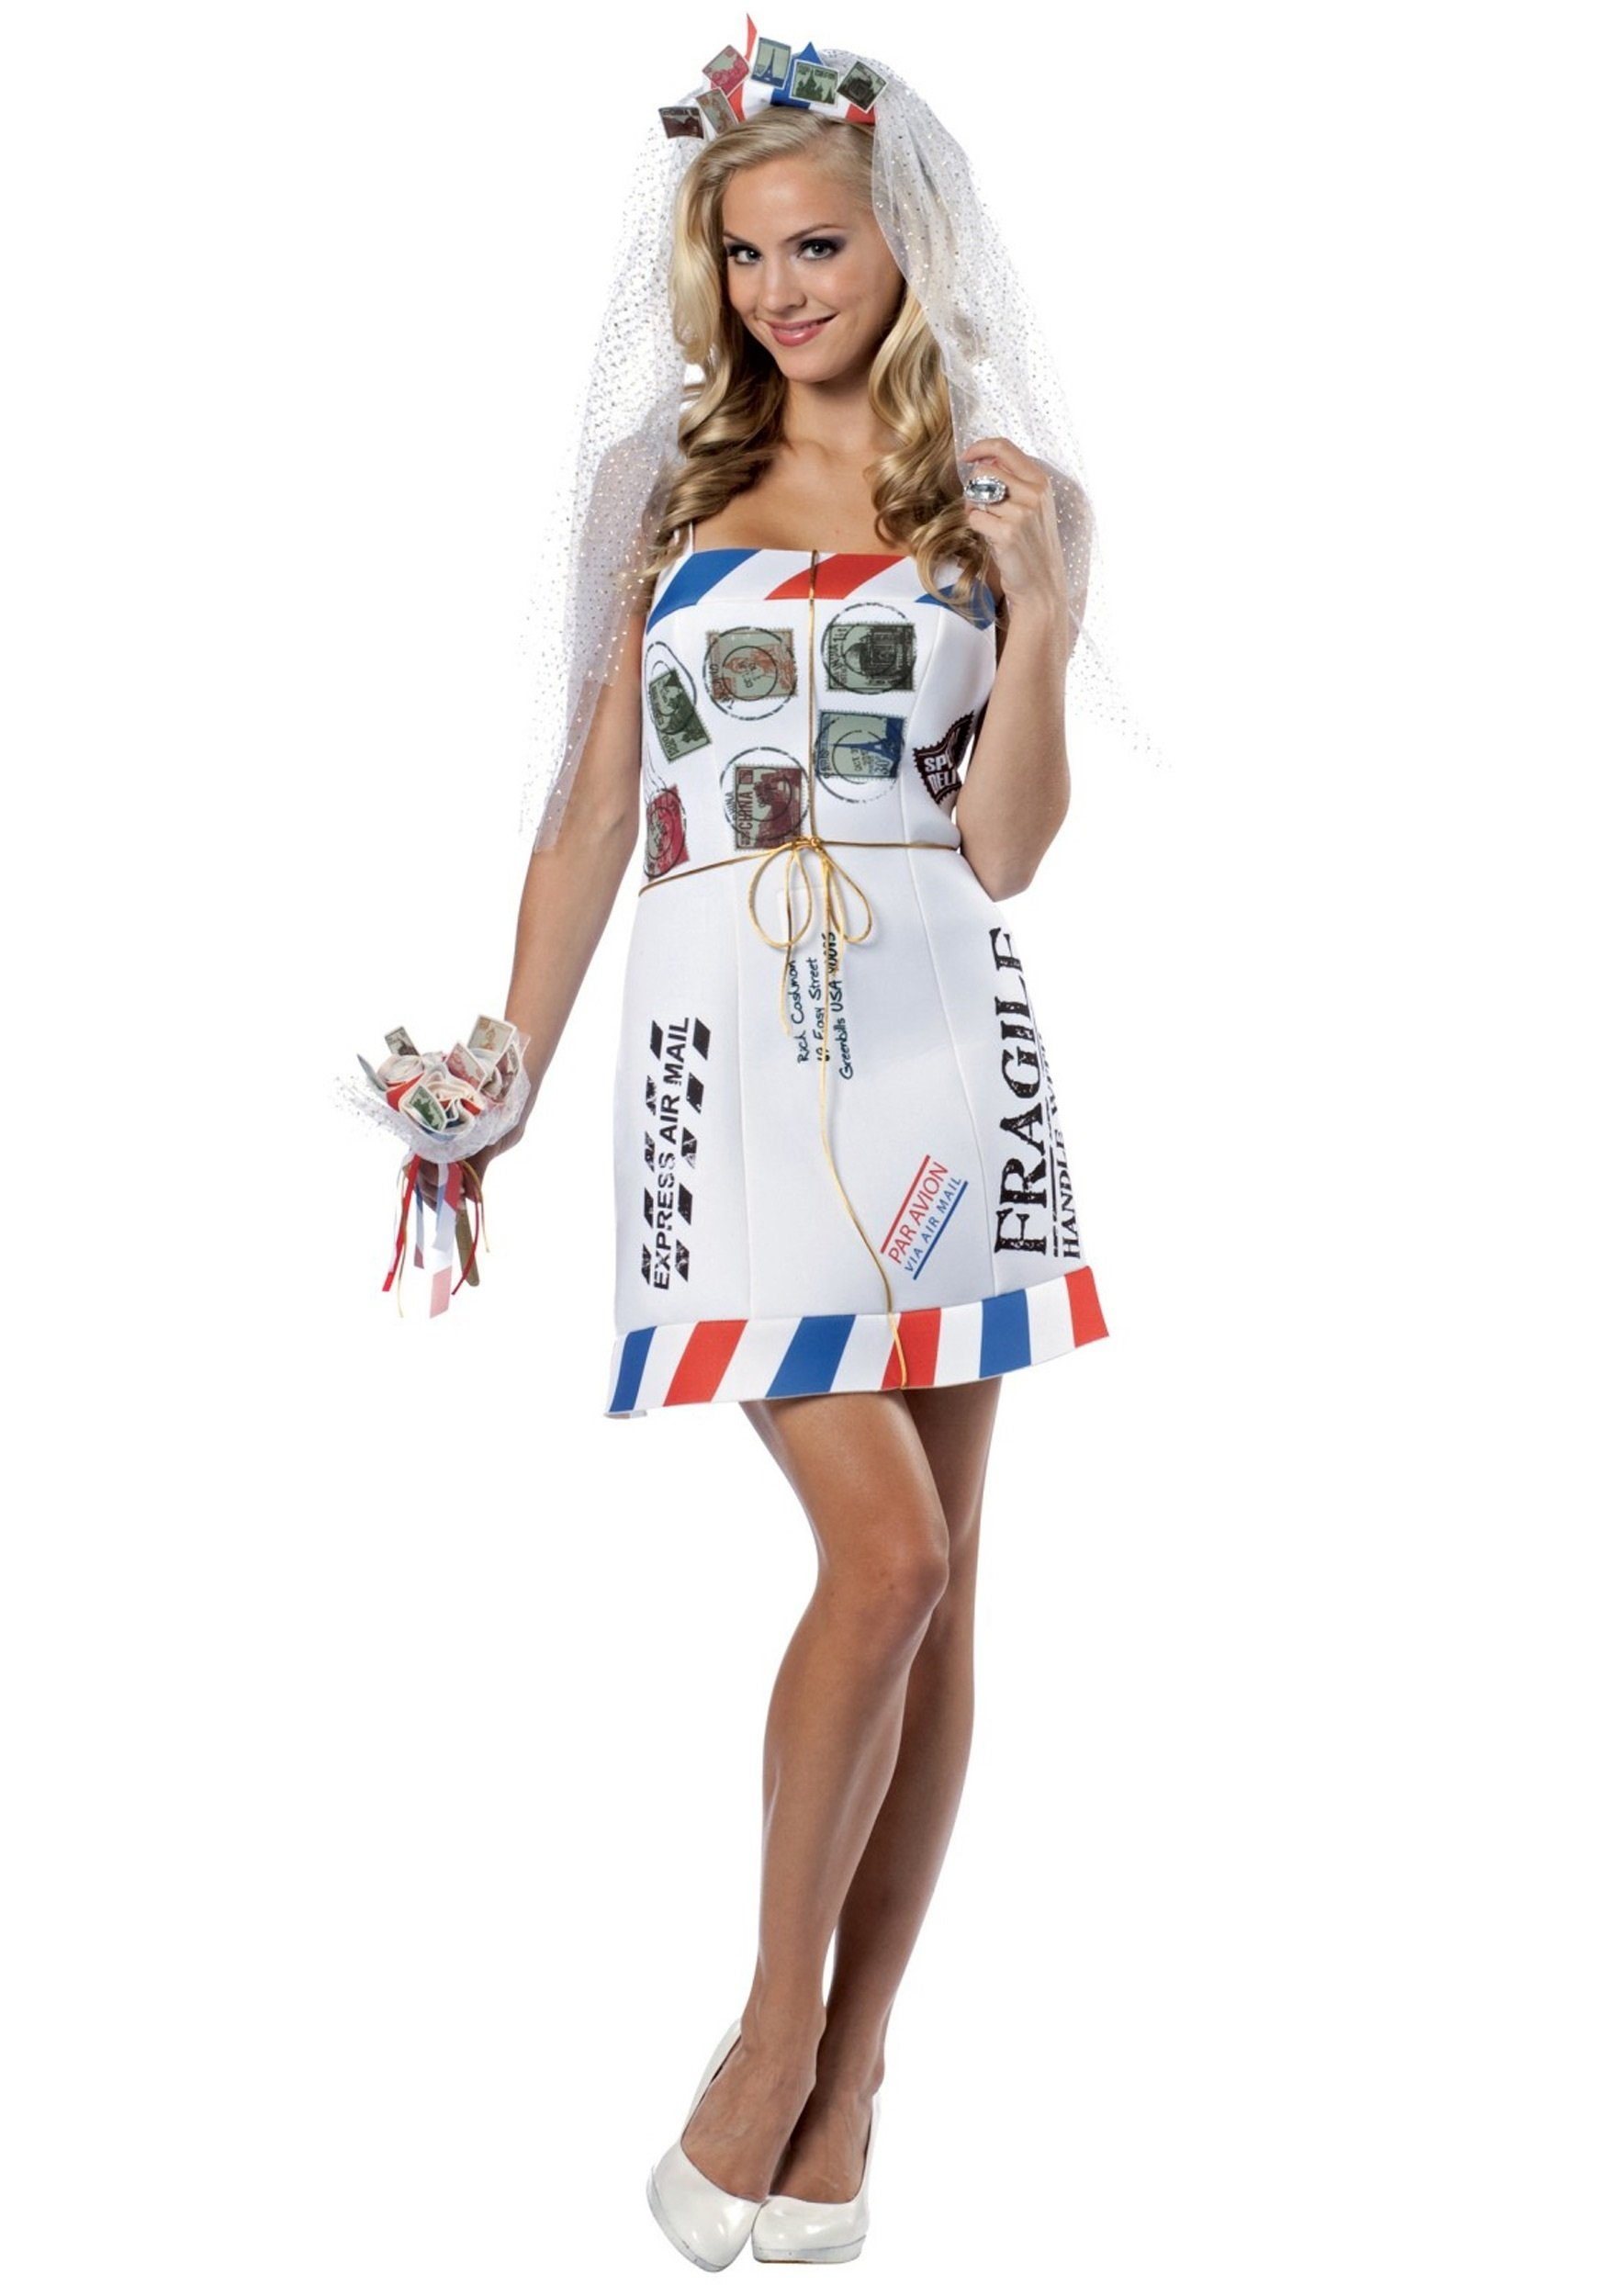 10 Lovable Unique Women Halloween Costume Ideas funny mail order bride costume funny halloween costume ideas for women 2020